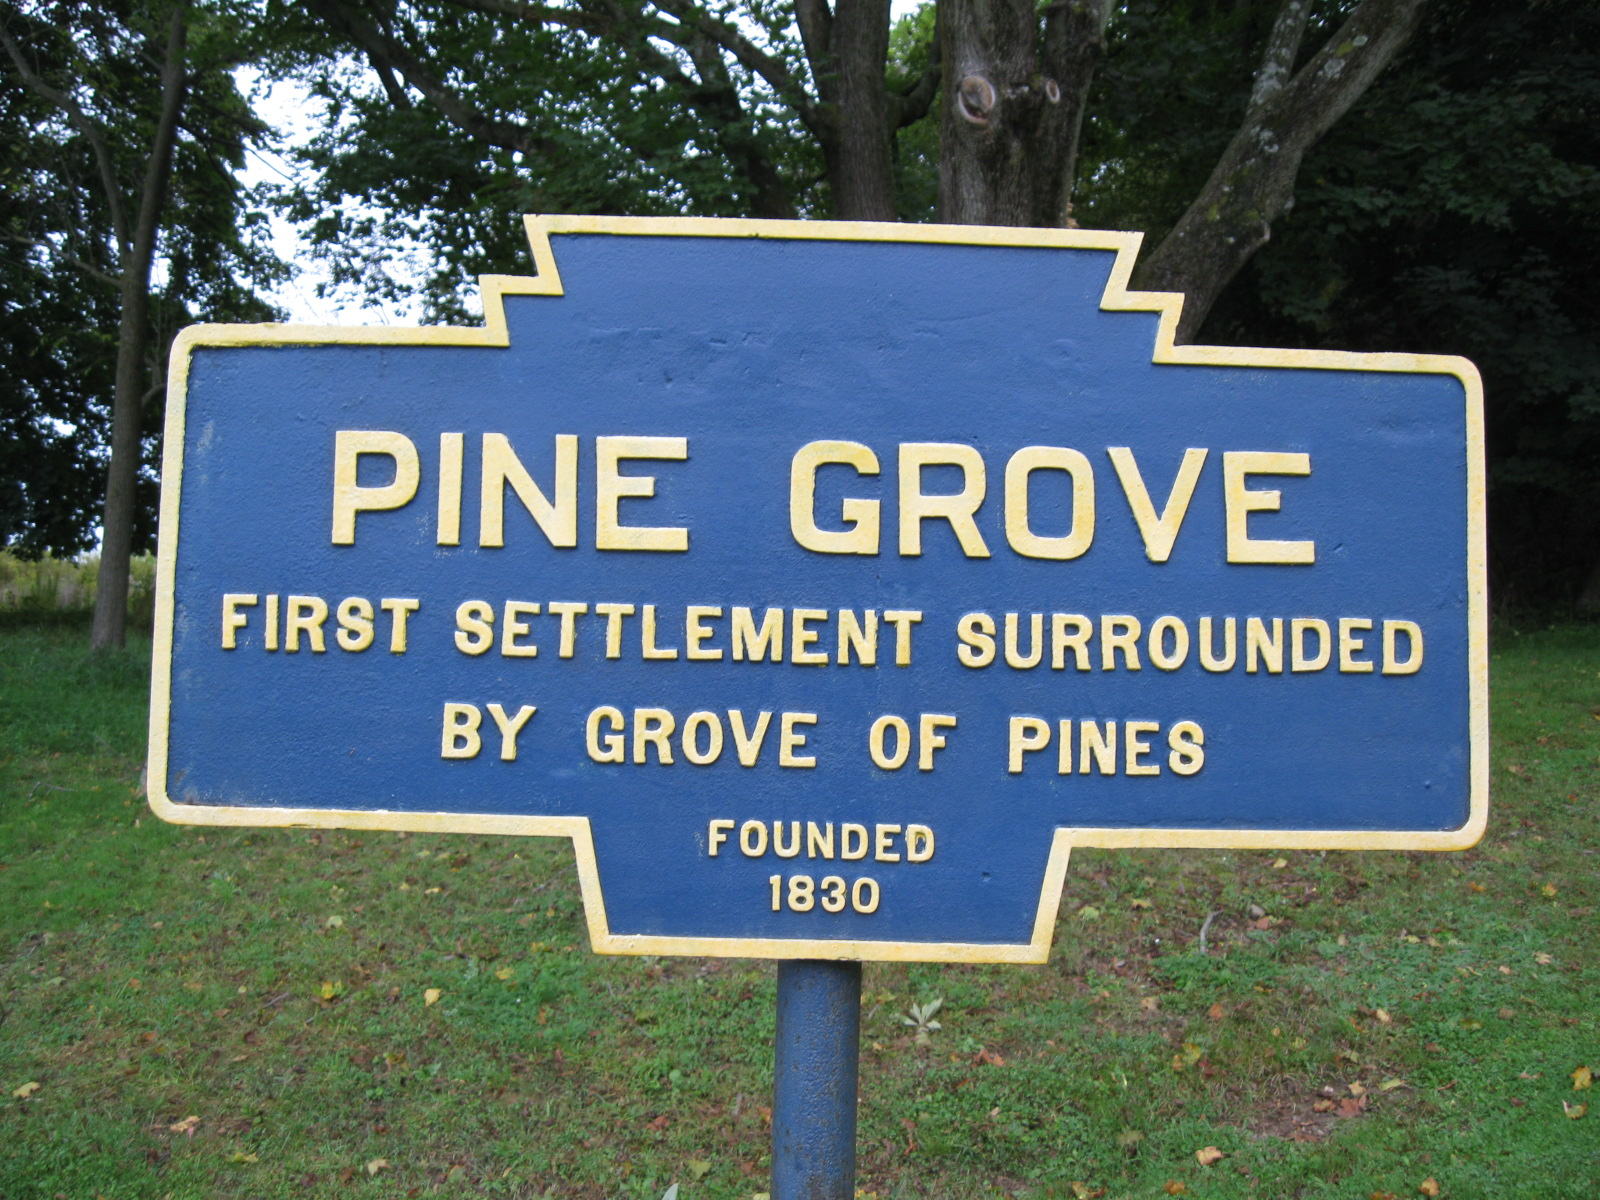 pine grove mills online dating Cremation specialist of pennsylvania is available 24 hours a day, 7 days a week to help you, whether you have a question about funerals or someone has passed away.